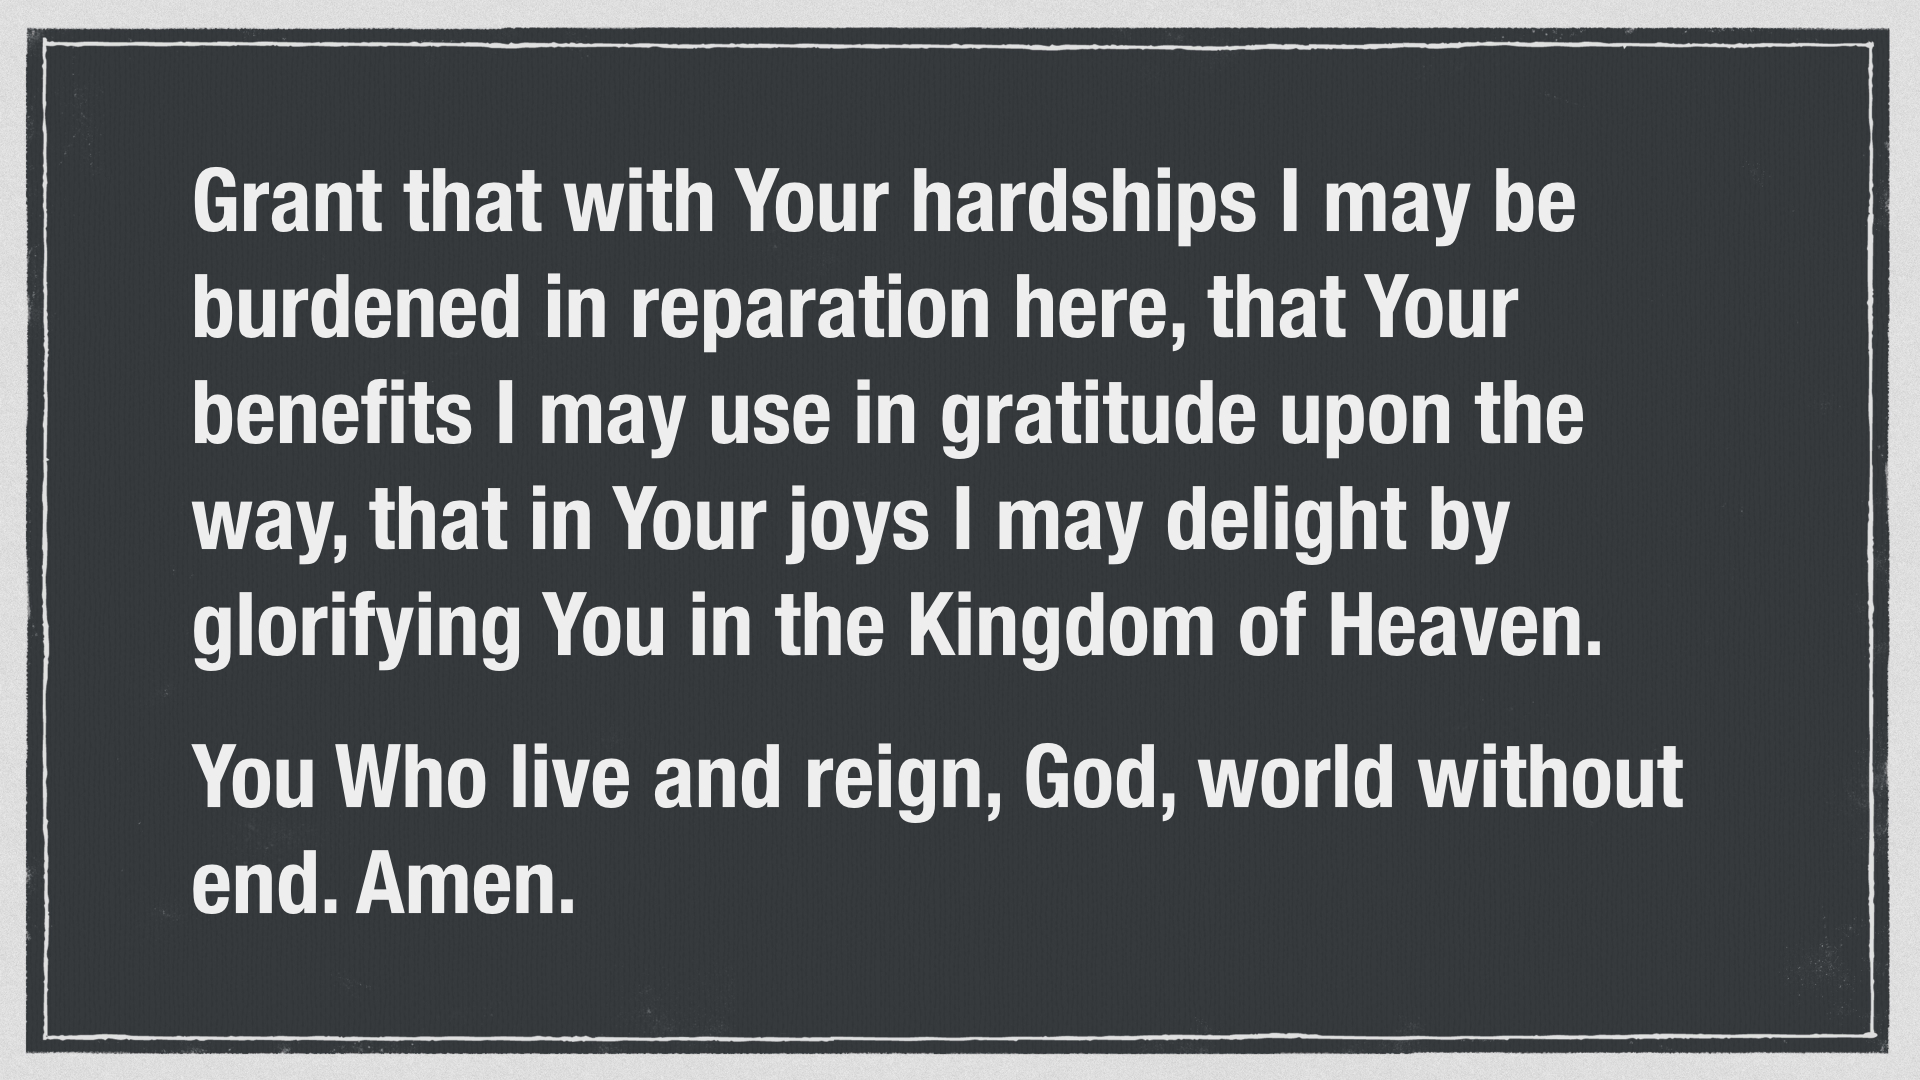 Prayer of St. Thomas Aquinas for ordering life wisely.010.jpg